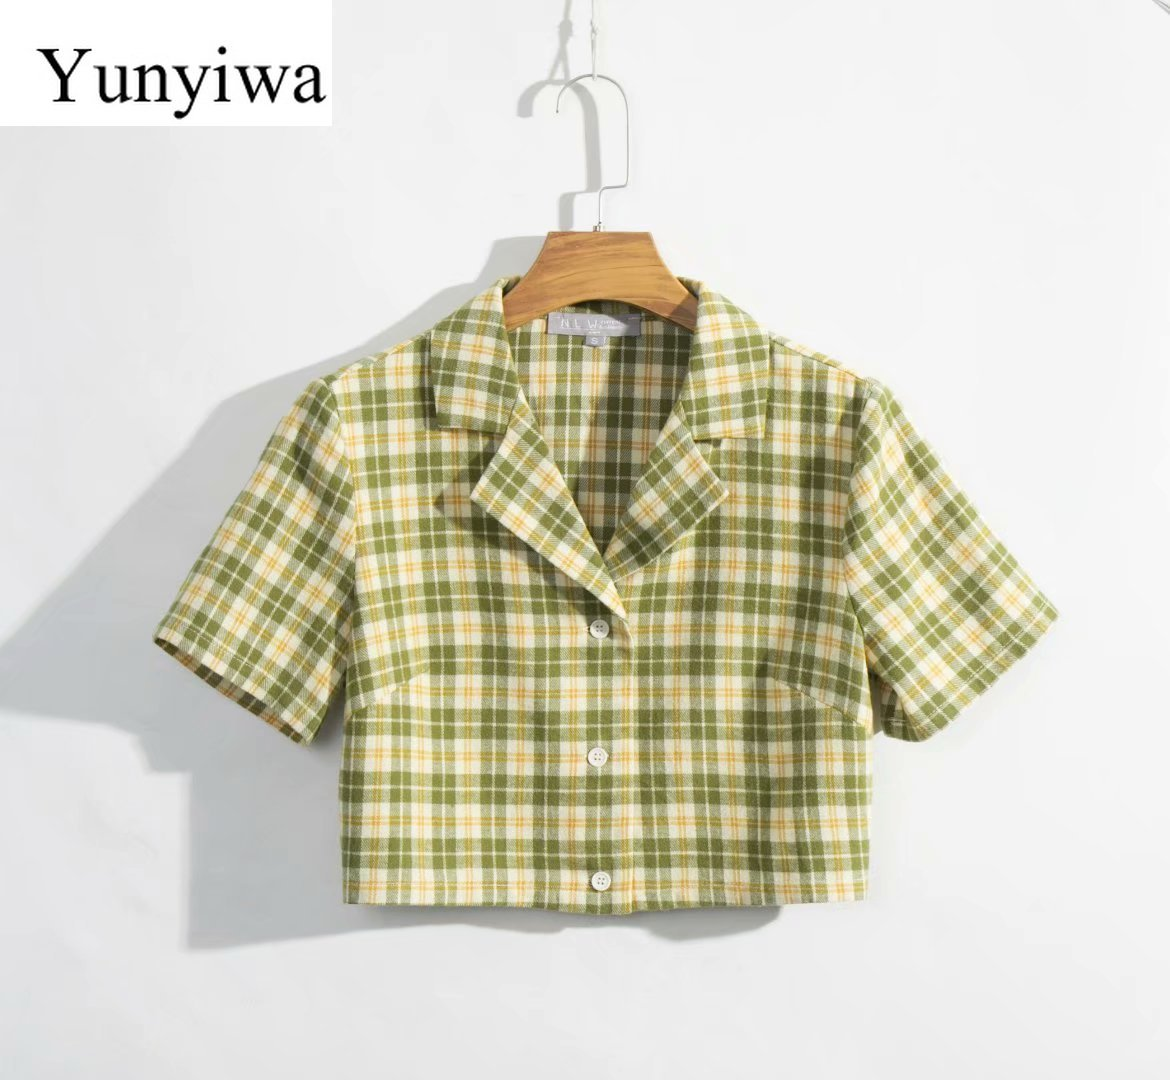 2020 Women's New Slimmed down Short sleeved Plaid Shirt Womens Blouse Sexy Party Shirts Tops Clothing Blusas Mujer De Moda Blouses & Shirts  - AliExpress